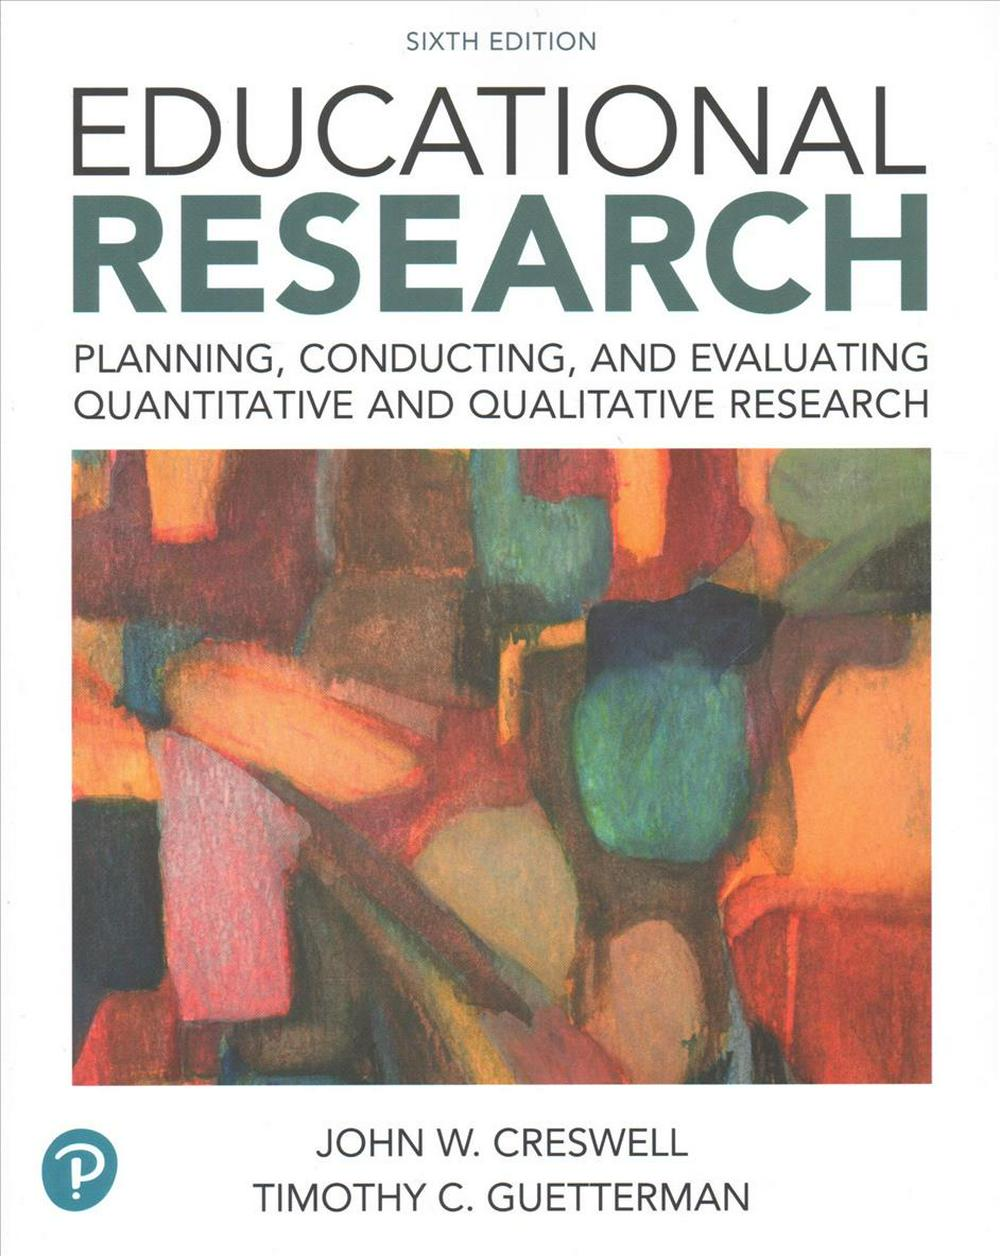 Educational Research: Planning, Conducting, and Evaluating Quantitative and Qualitative Research Plus Mylab Education with Enhanced Pearson Etext -- Access Card Package